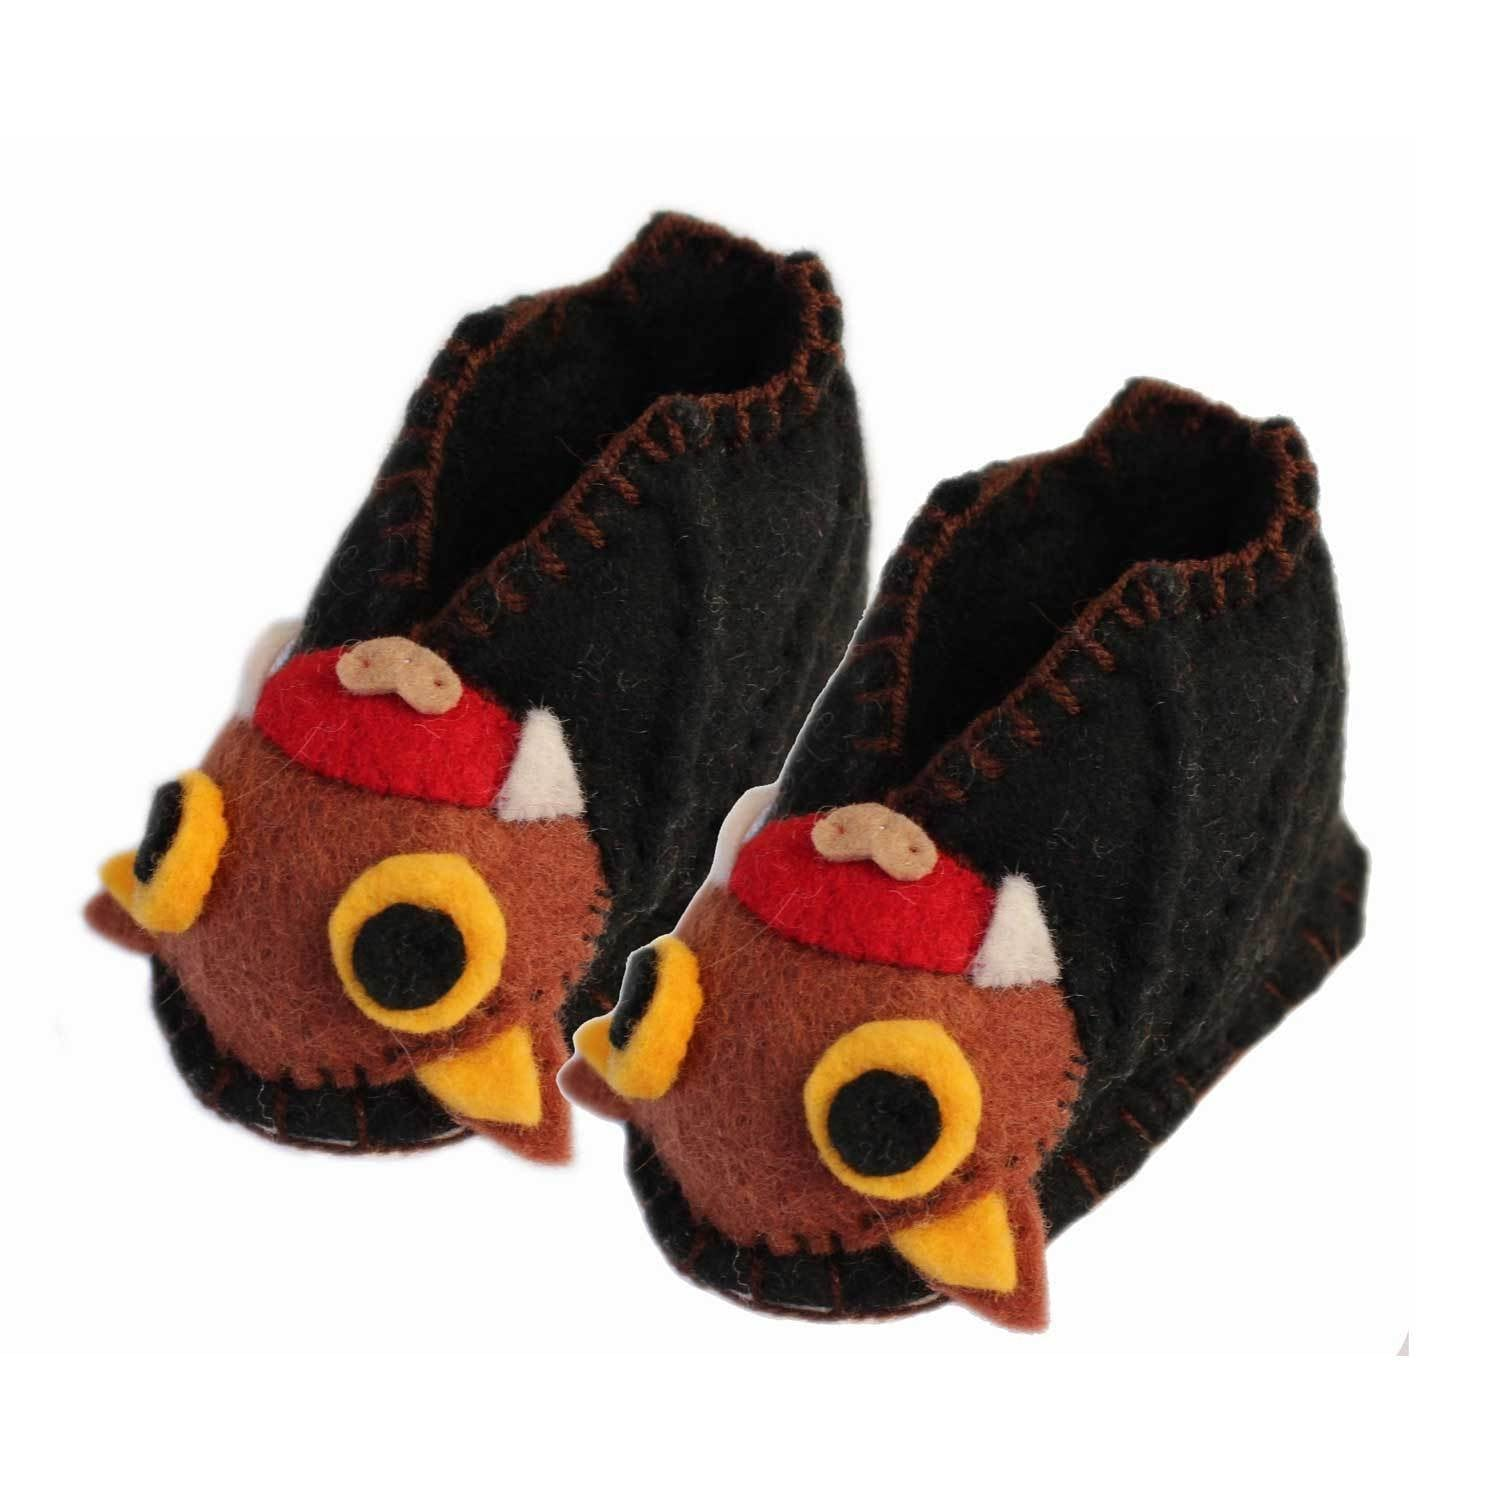 Silk Road Bazaar Bat Zooties Baby Booties Jungle Pillows